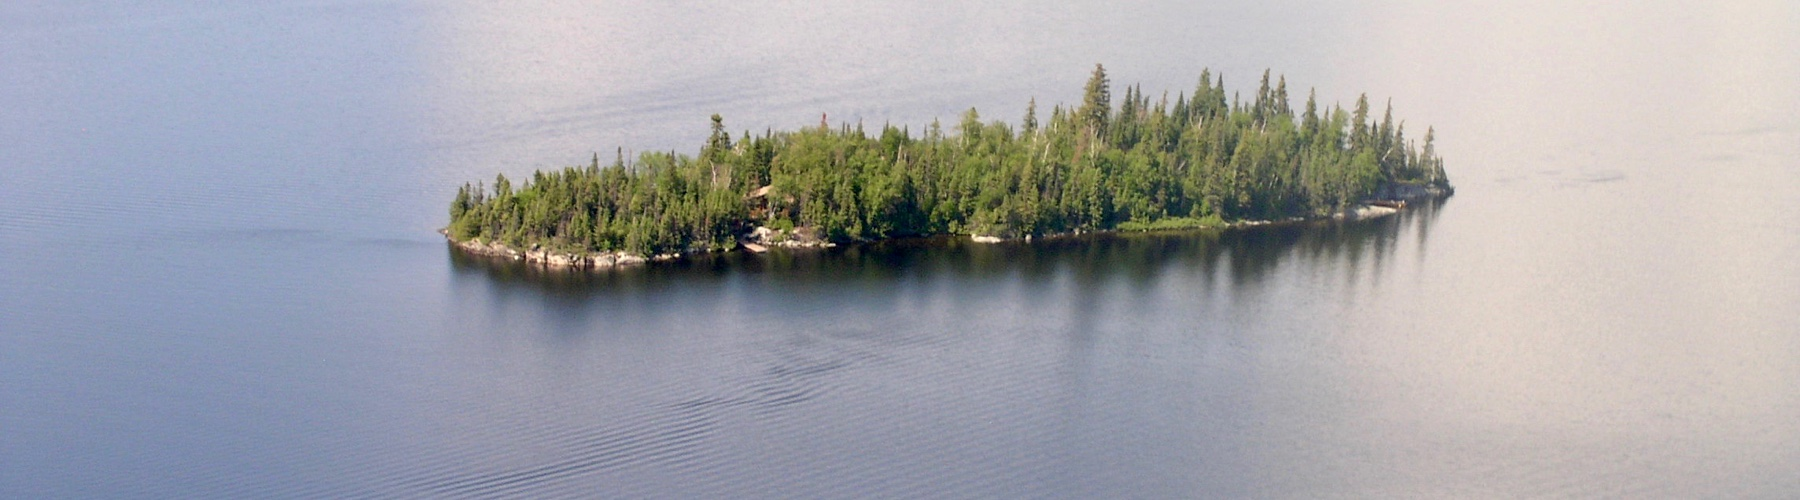 Otter Island from Air